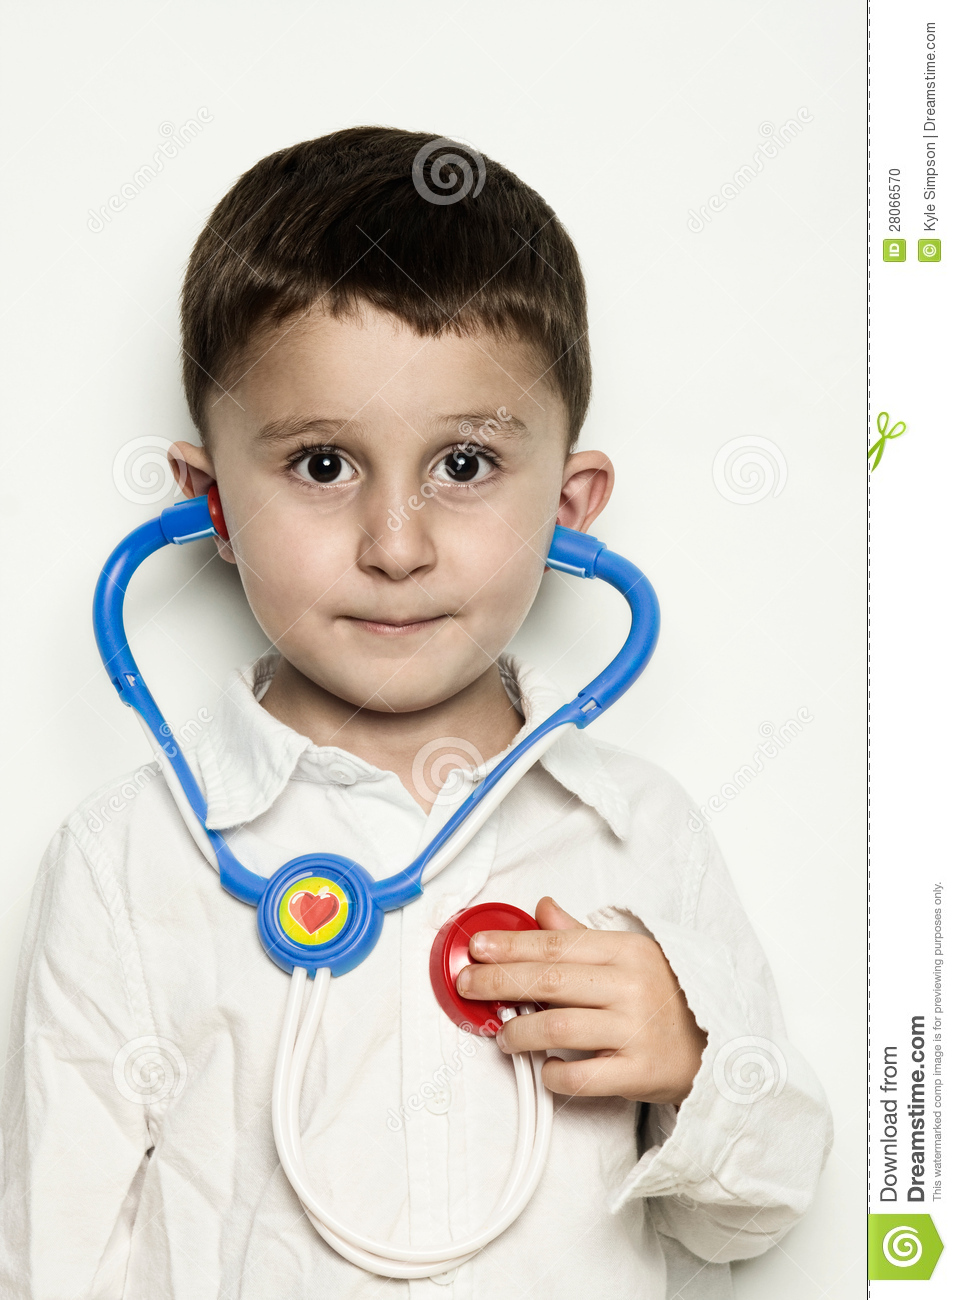 Child Listening To Heartbeat With A Stethoscope Stock